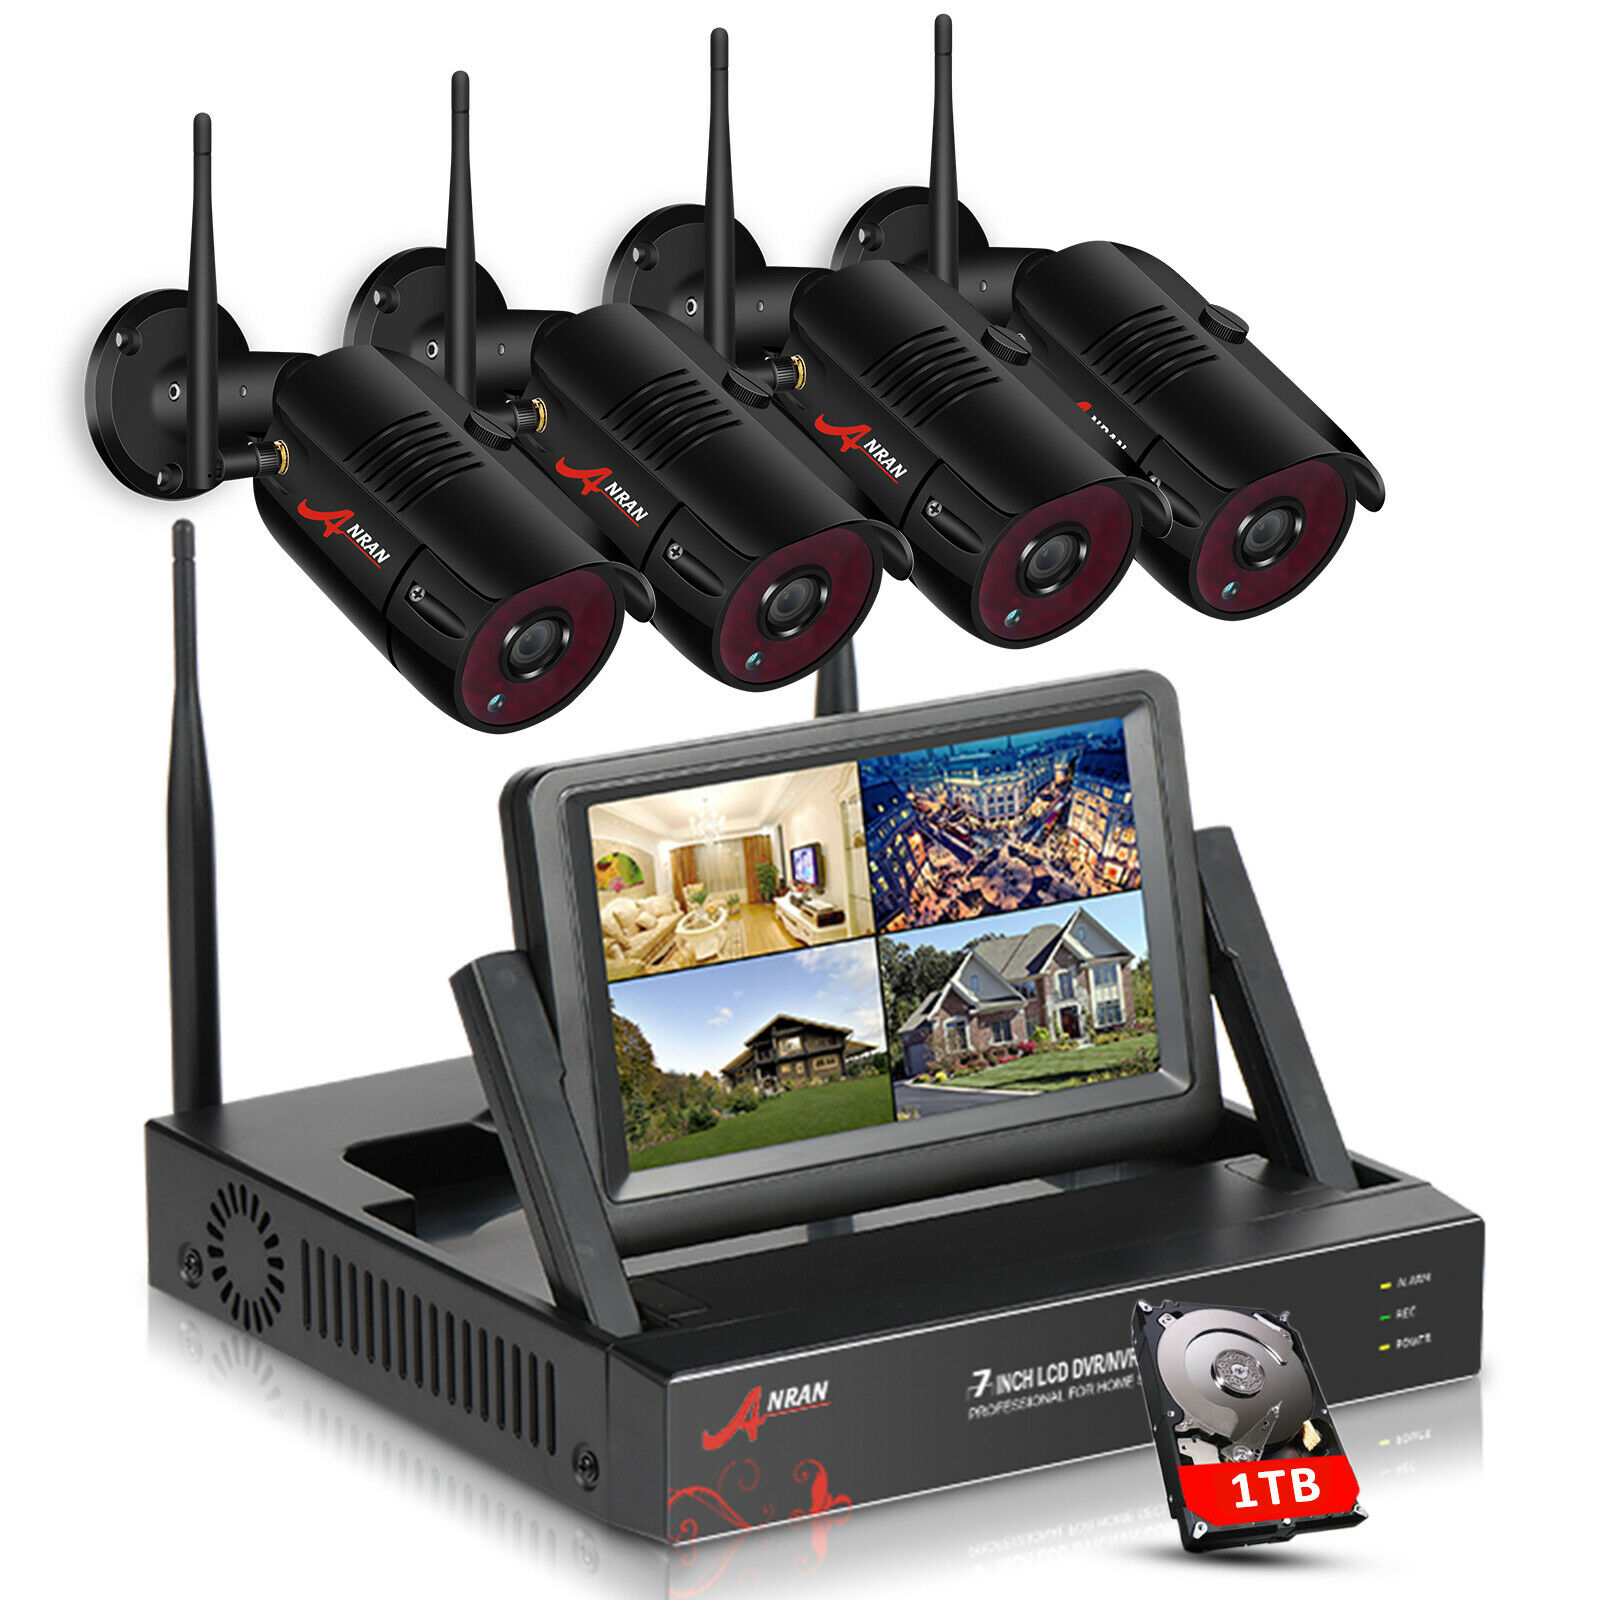 CCTV System Wireless 1080P 7 Inch Monitor NVR Security Camera System With 2MP Outdoor Wifi IP Camera Surveillance Kit